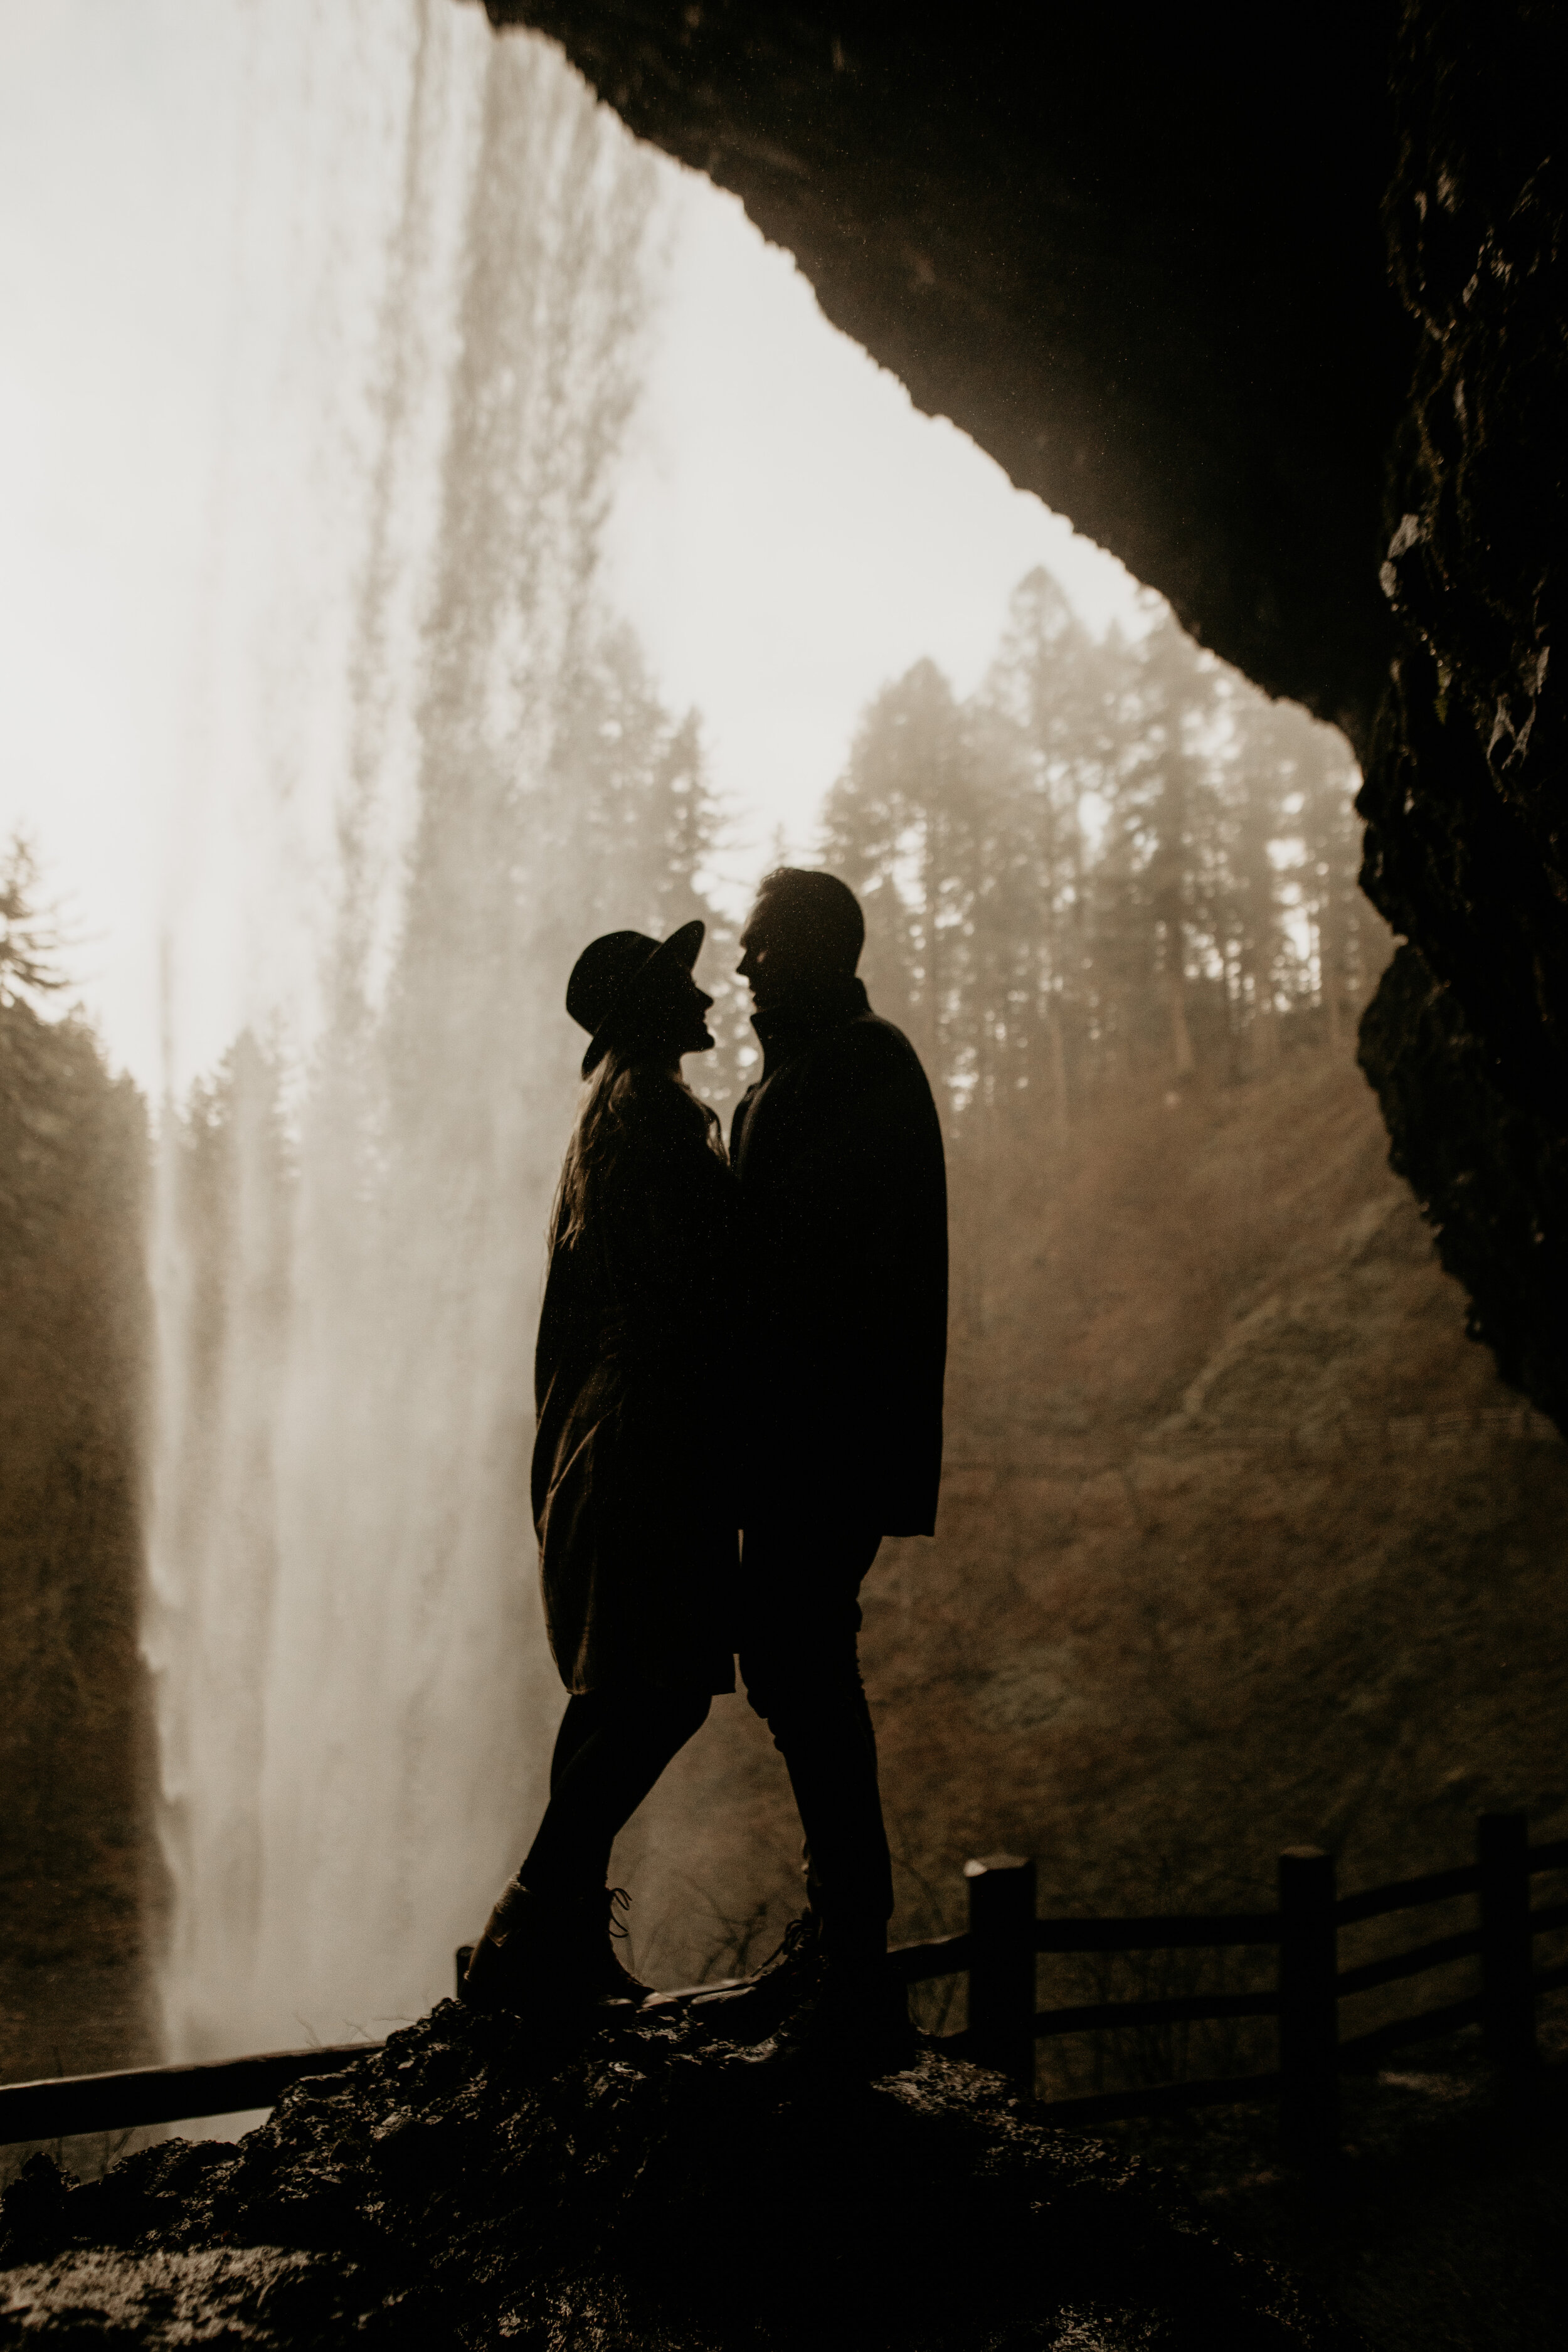 Locations in the US that look like Iceland- Iceland elopement- Iceland elopement photographer- Amalfi coast photographer- diablo lake elopement - Seattle elopement photographer - diablo lake photographer - north cascades elopement photographer - Seattle wedding photographer - cute couple - elope instead - breeanna lasher photographer - Iceland lookalike locations - Rialto beach elopement - Rialto beach elopement photographer - Rialto beach wedding